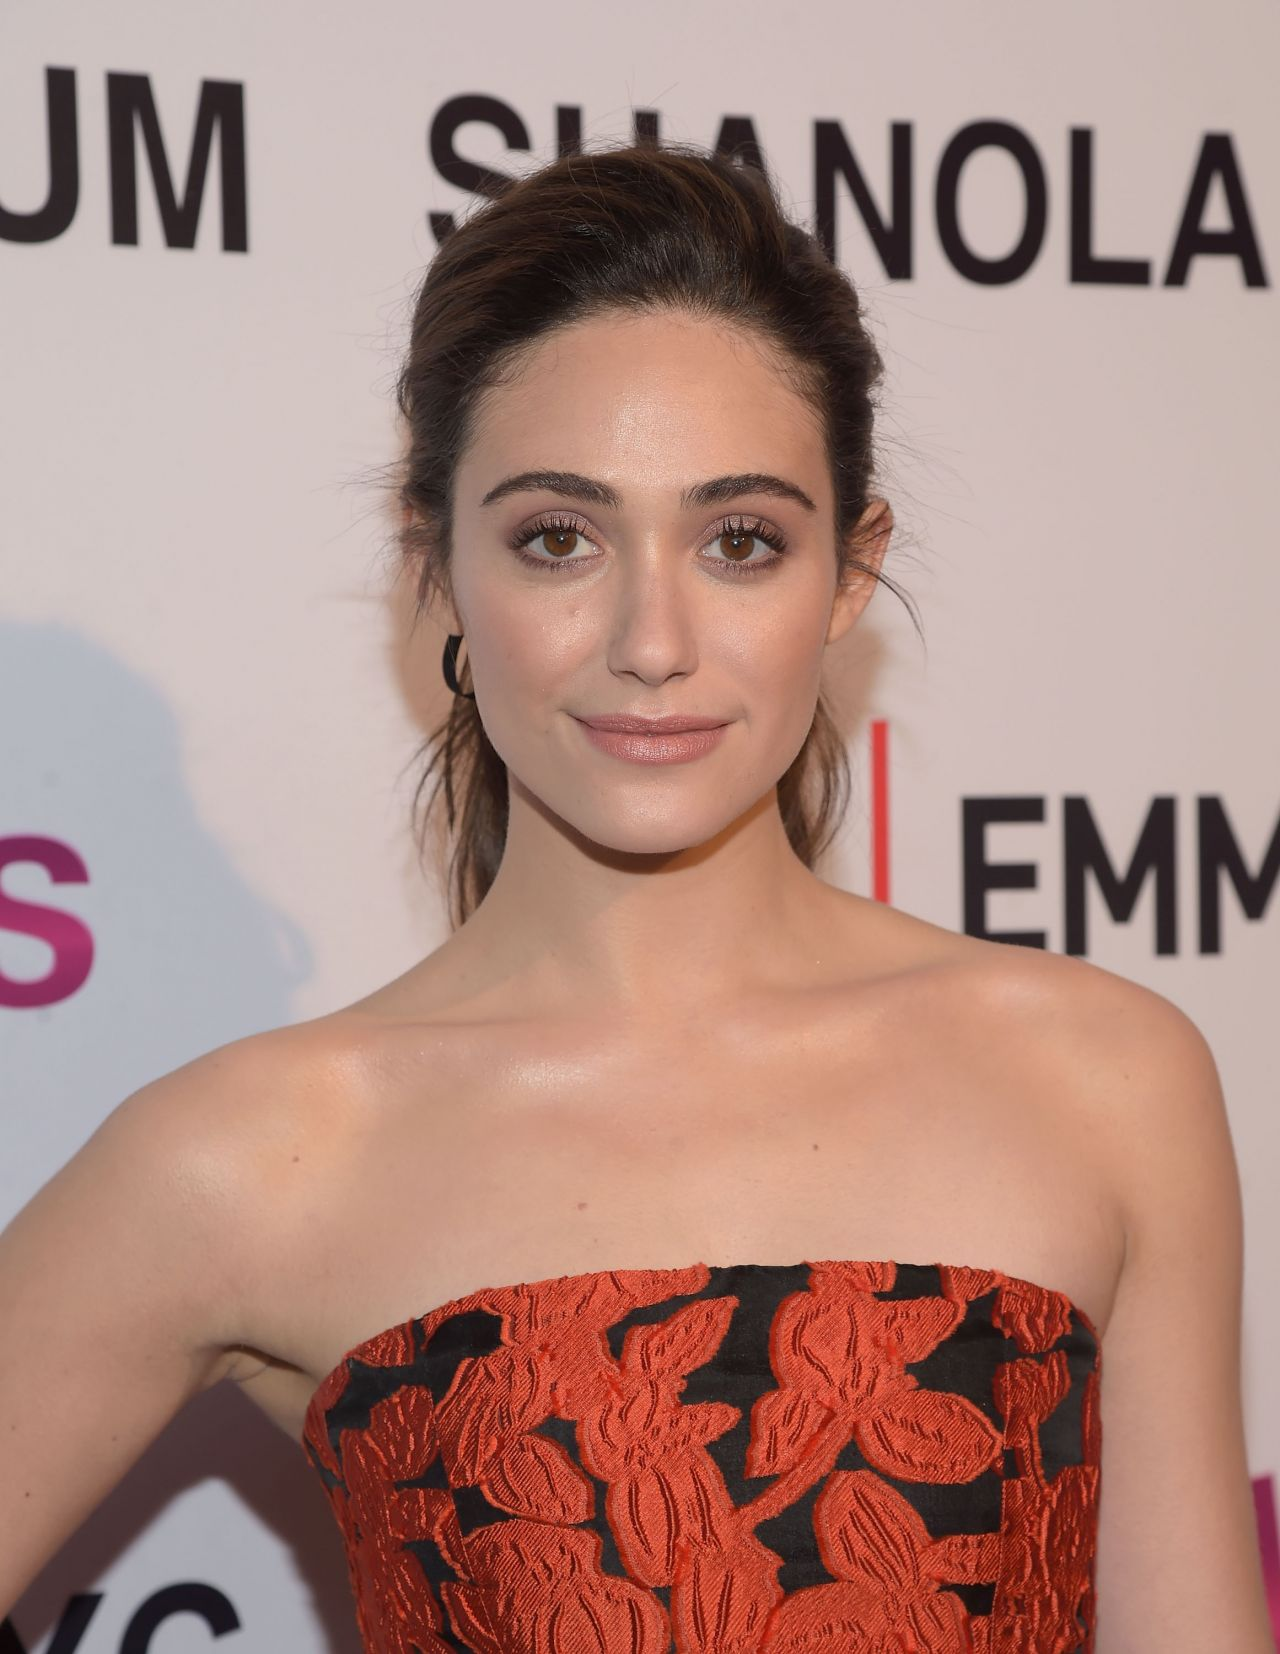 emmy-rossum-screening-and-panel-discussion-with-the-women-of-shameless-in-west-hollywood-2